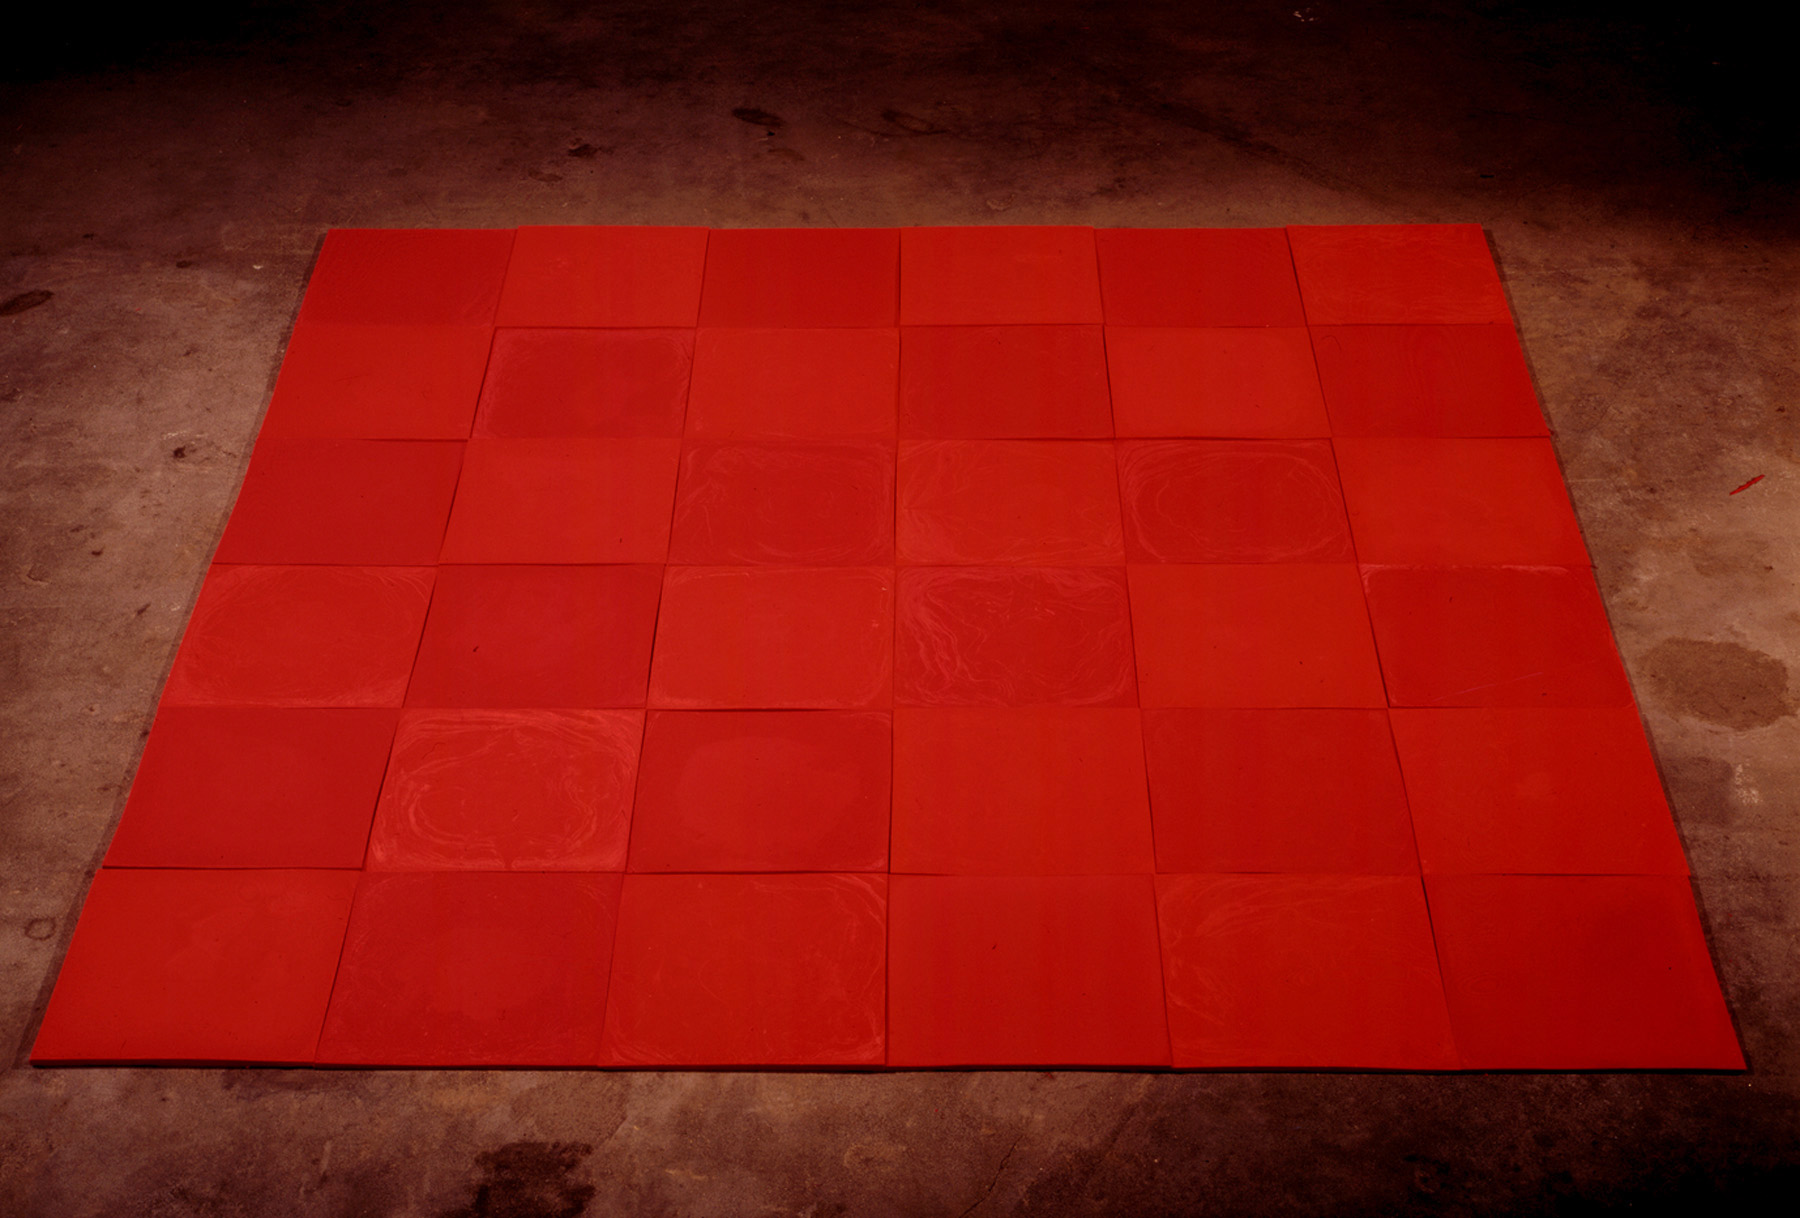 Homage to Carl Andre